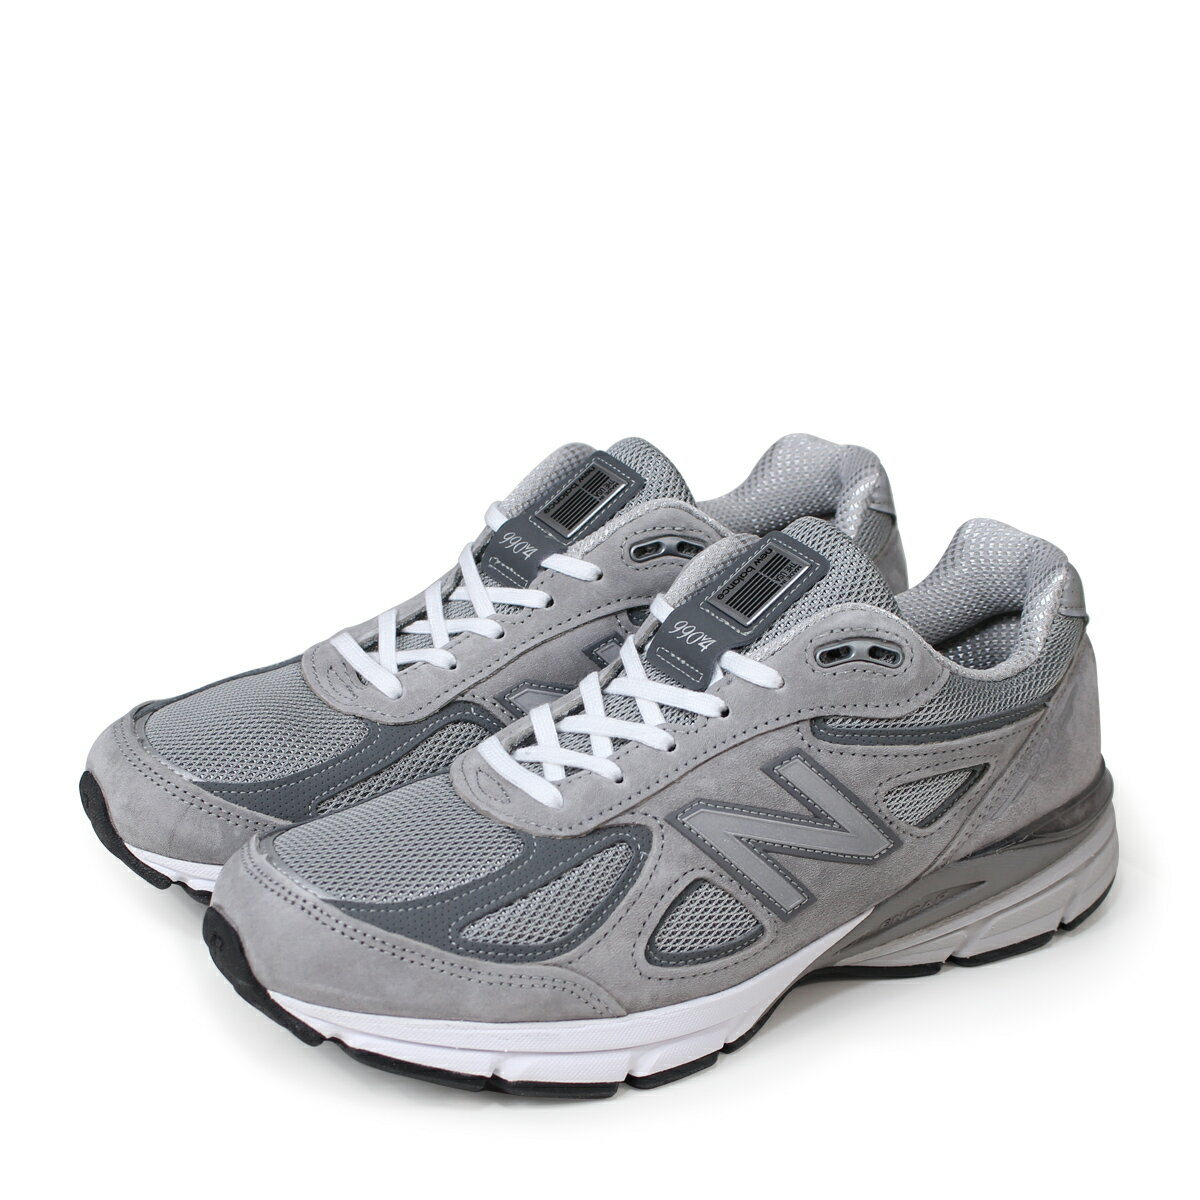 half off e550e fde60 new balance 990 New Balance sneakers men D Wise gray M990GL4 [193]